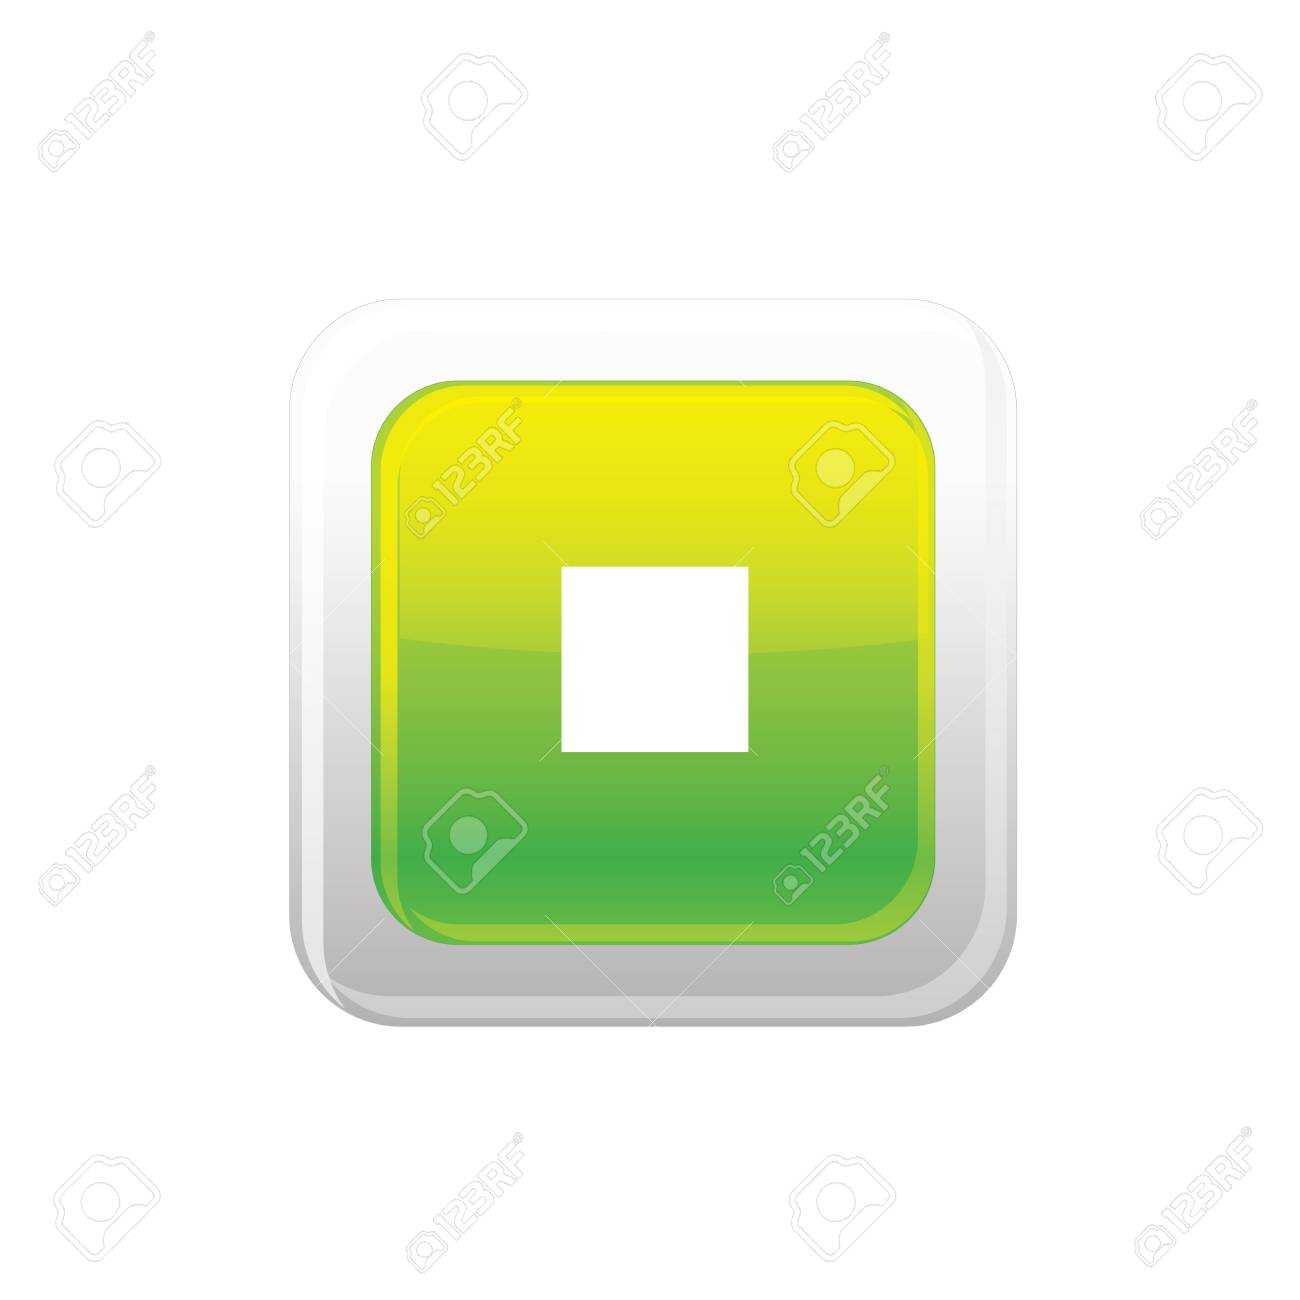 icon web set for use Stock Vector - 19823604